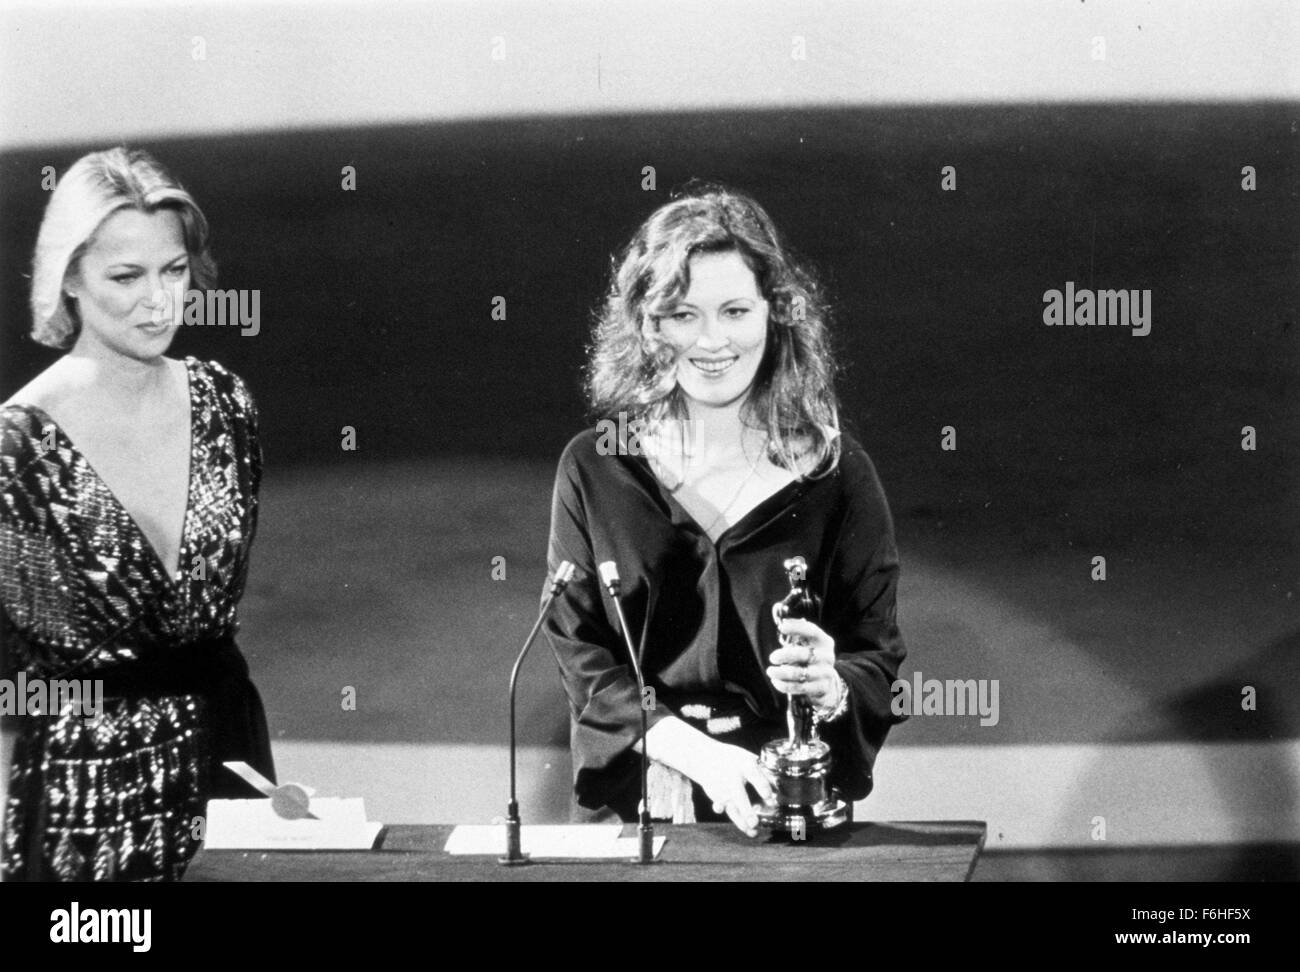 Faye dunaway network - 1976 Film Title Network Pictured 1976 Academy Awards Ceremonies Accessories Awards Academy Best Actress Dorothy Chandler Pavilion Faye Dunaway